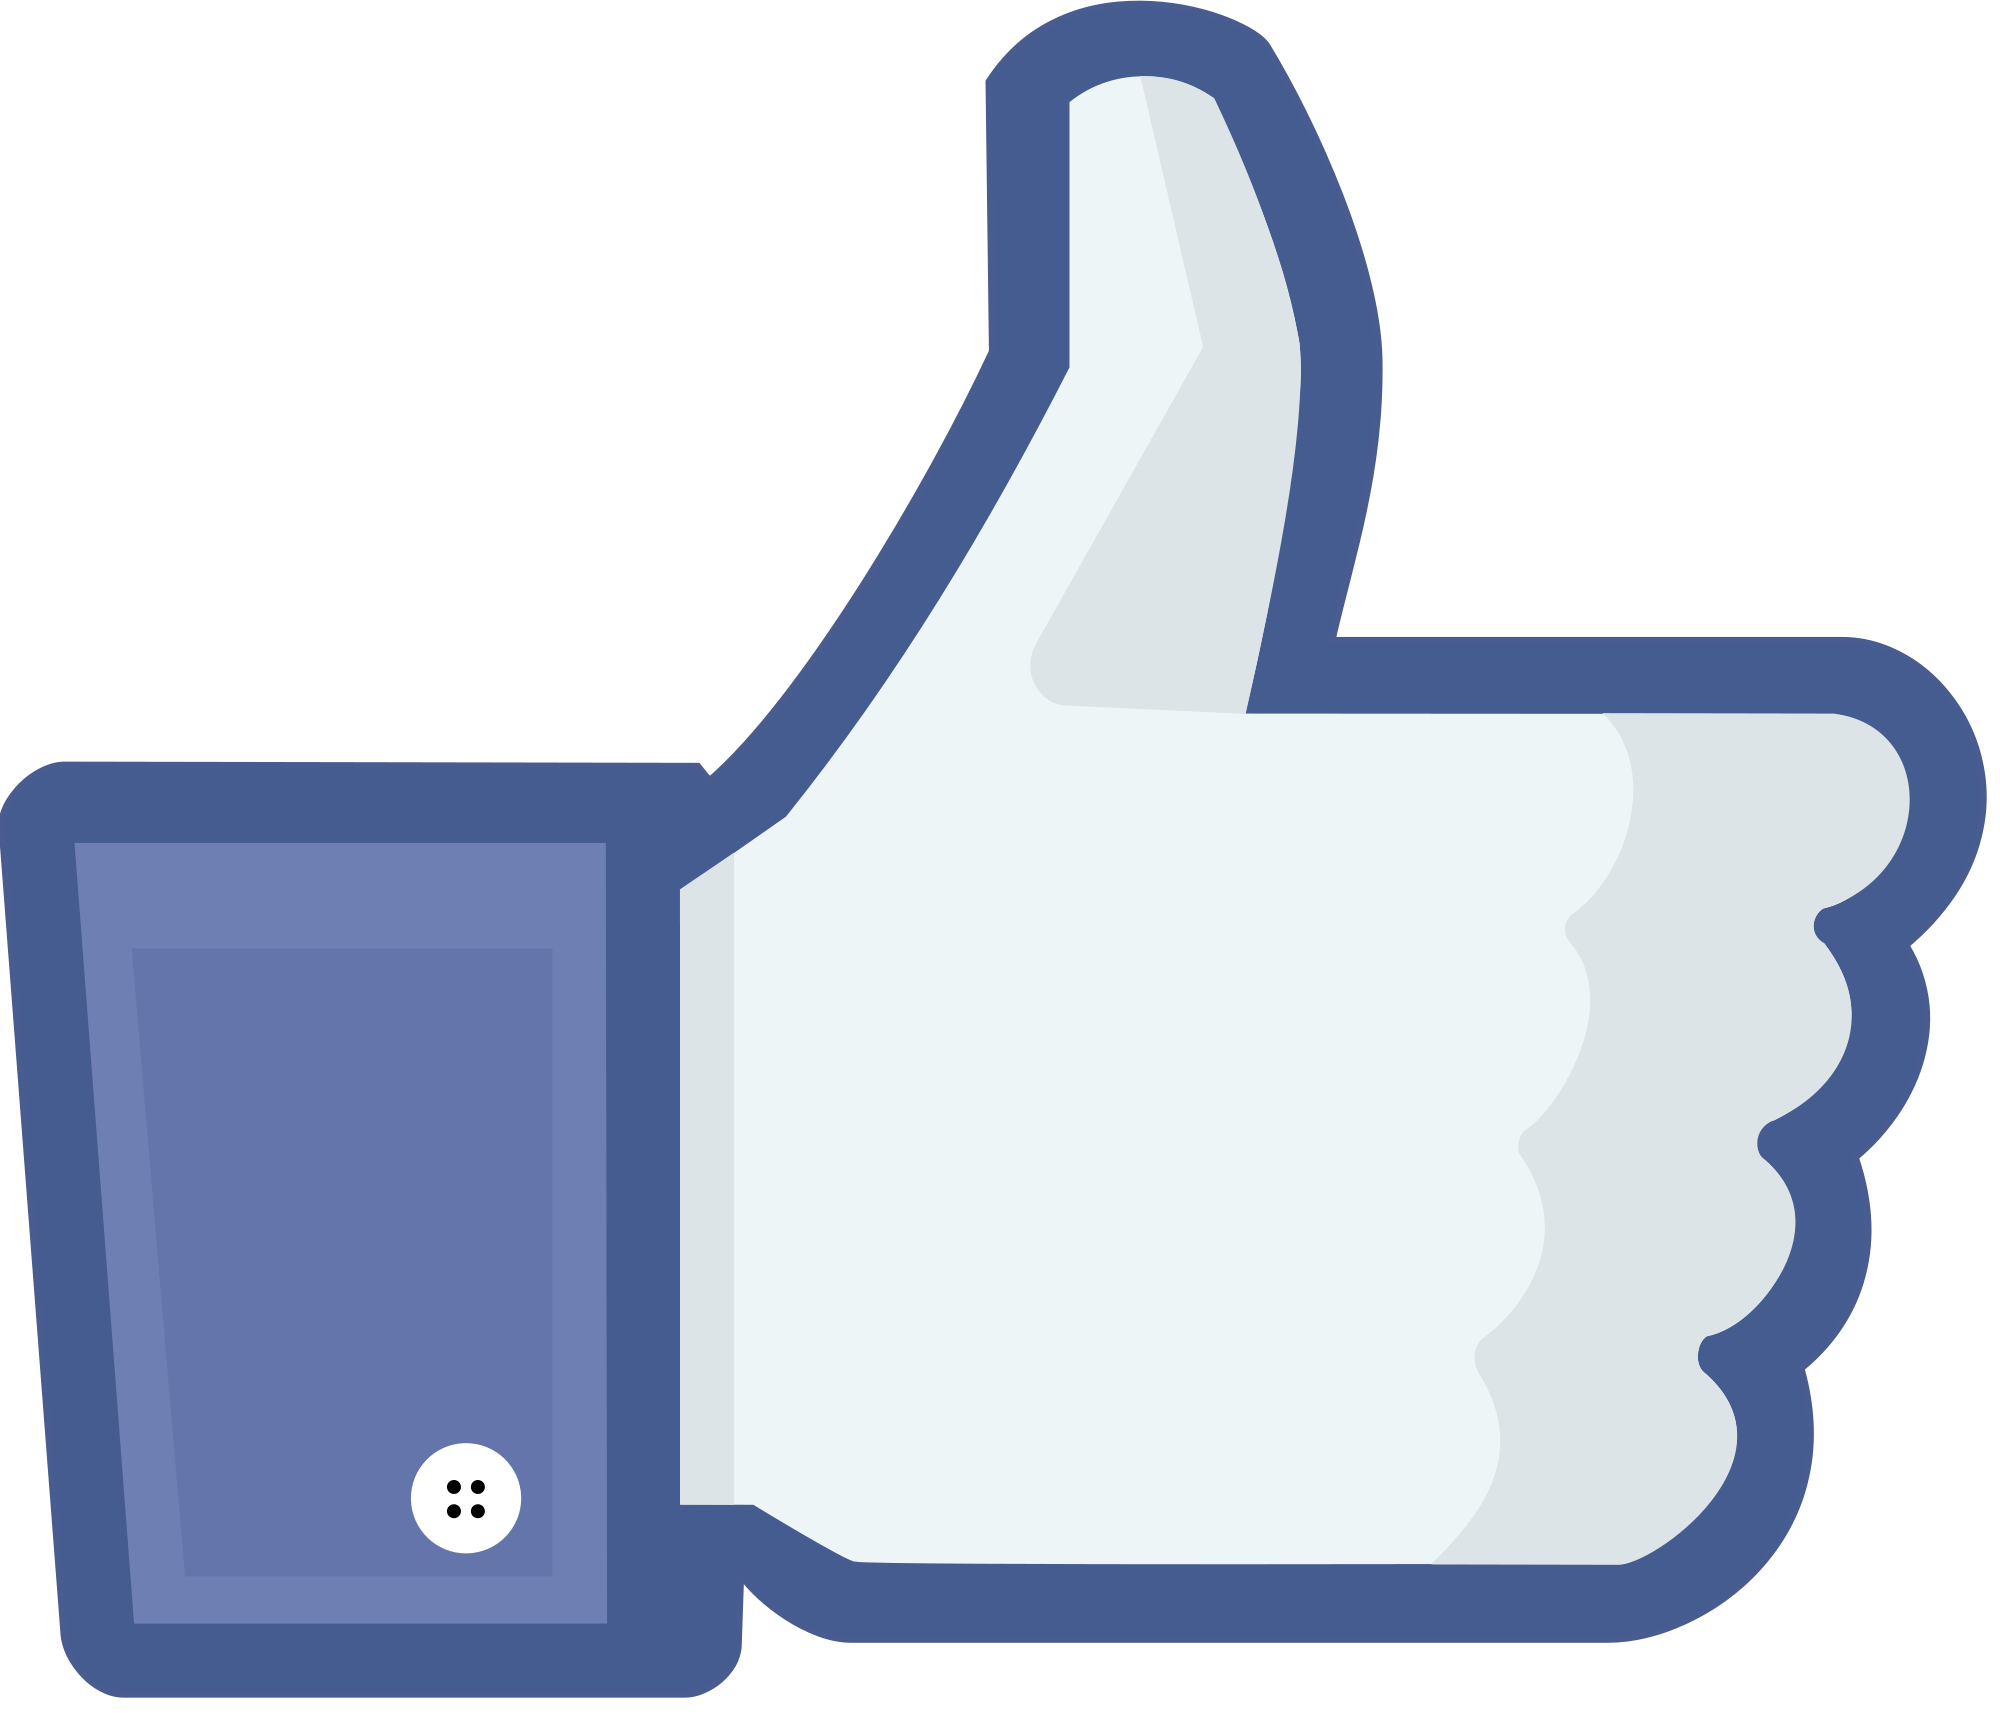 Facebook thumbs up clipart jpg freeuse Facebook Thumbs Up Clipart - Clipart Kid jpg freeuse